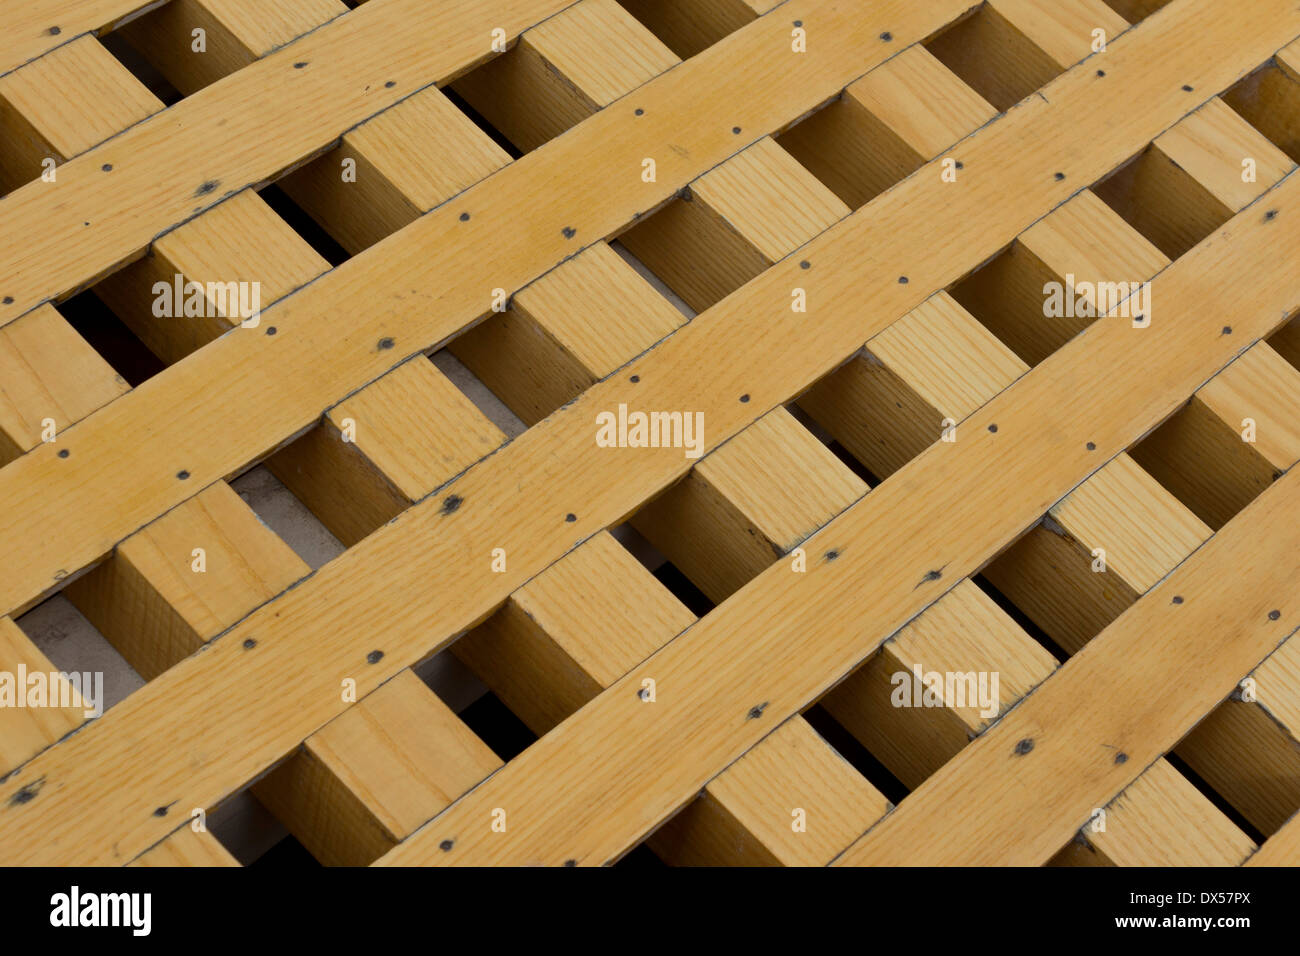 Grid pattern of a wooden hatch cover, on the USS Constitution, in Charlestown harbour, Boston, Massachusetts, USA - Stock Image